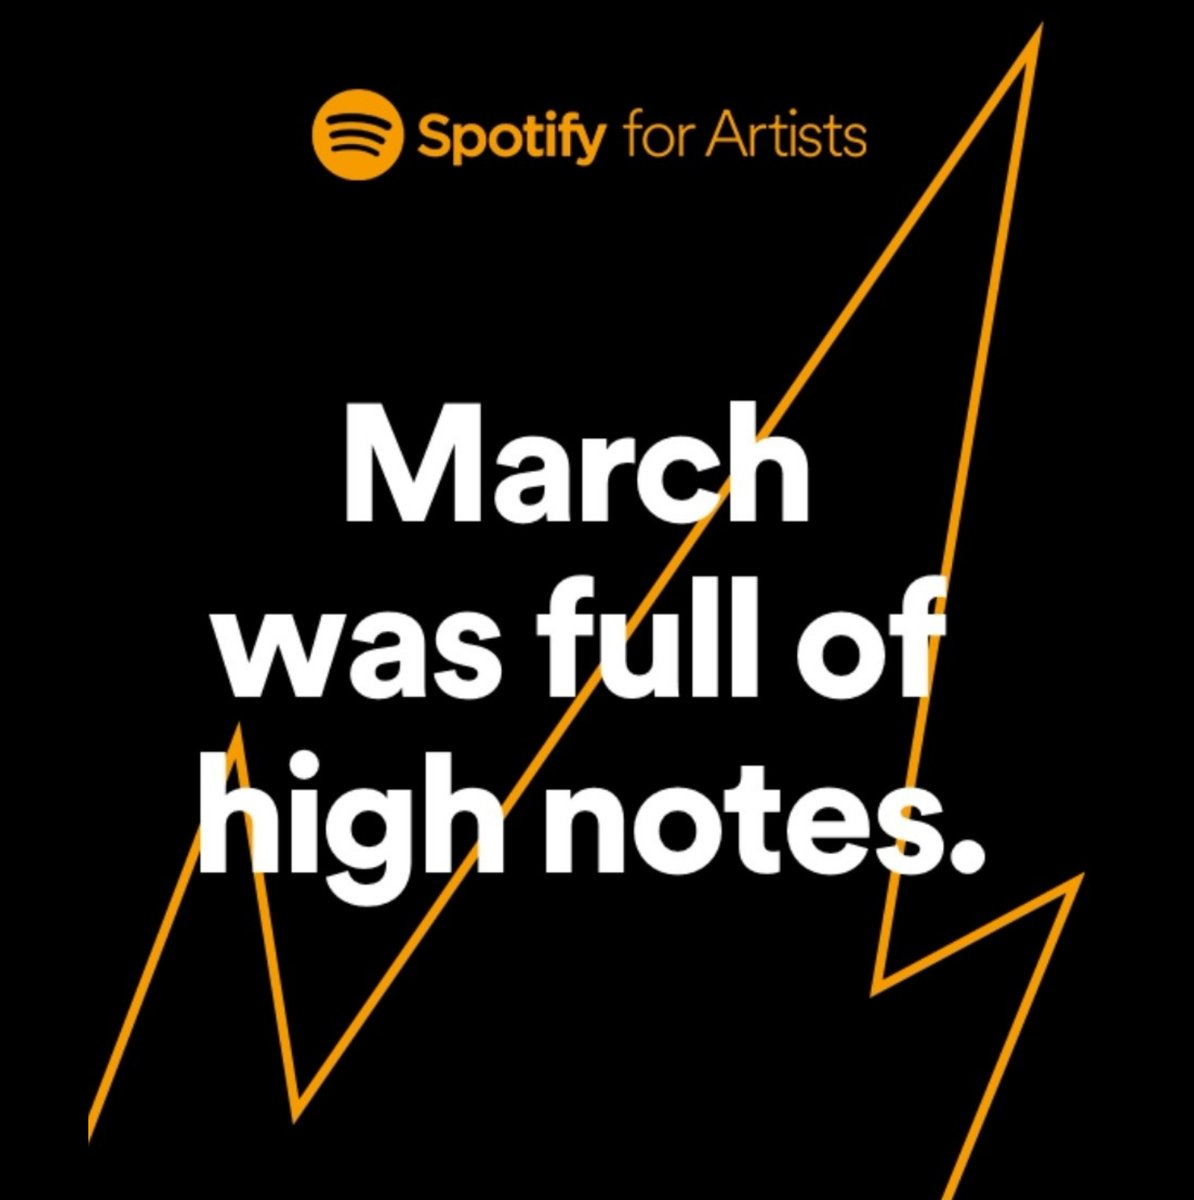 251k+ listeners tuned in to my #Spotify in March. Grateful  pic.twitter.com/BcI59pkL8W